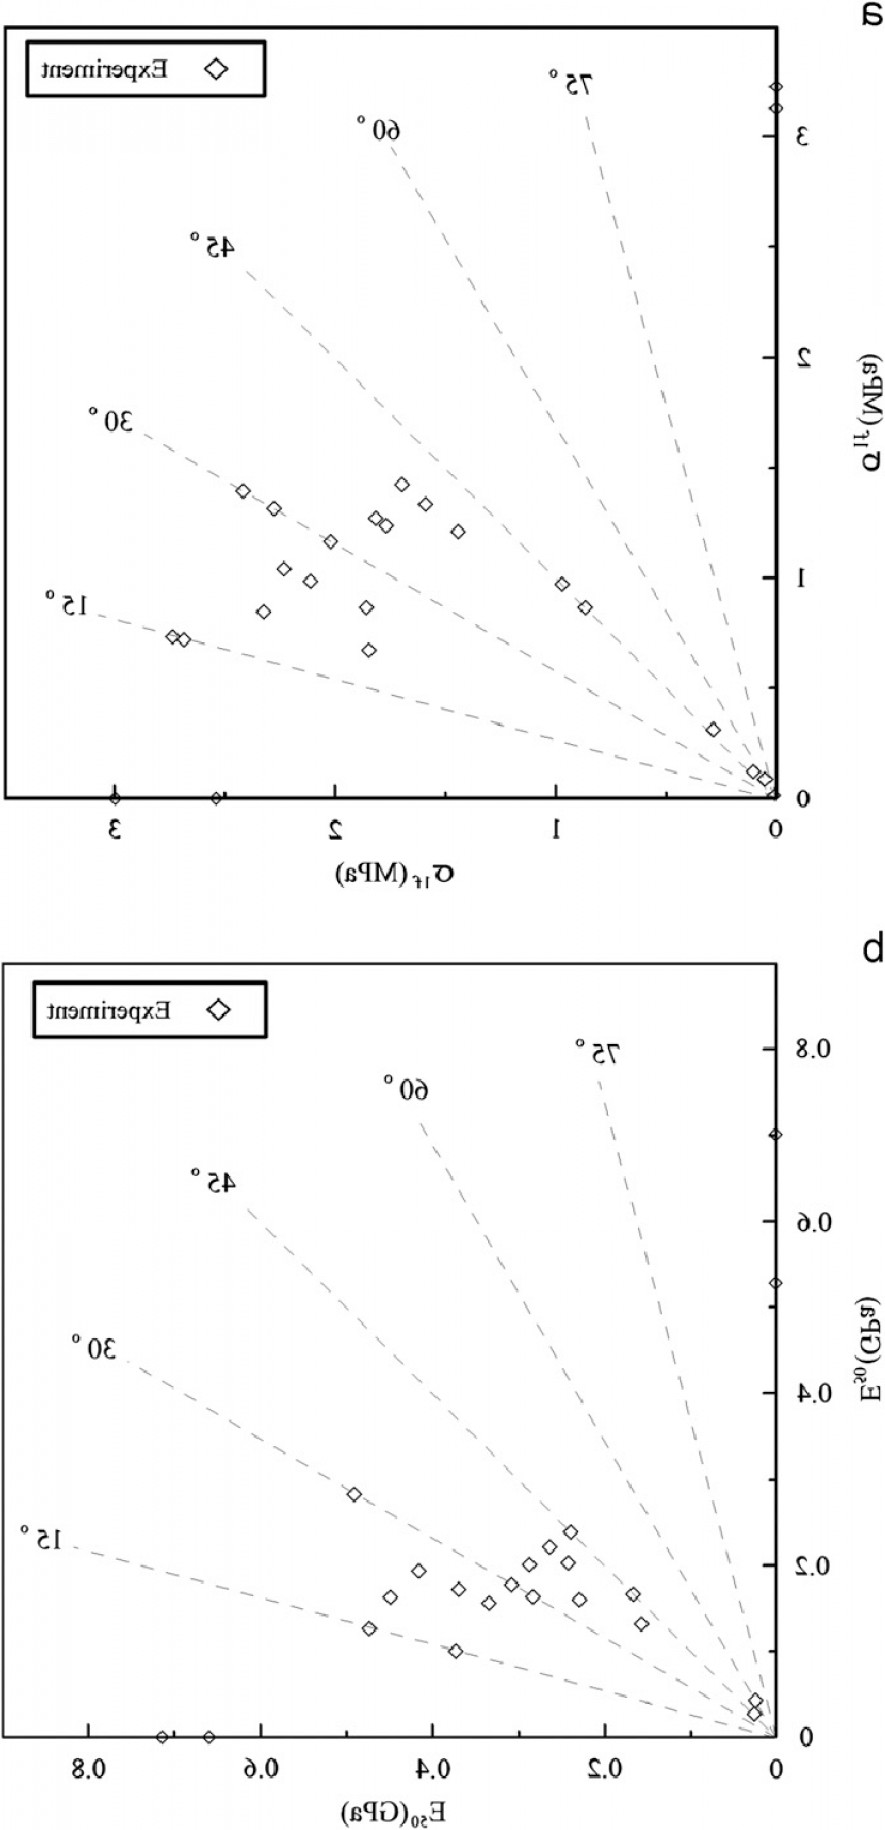 Vector Angle Properties: The Mechanical Properties Of The Jointed Rock Mass In Various Joint Orientations Thefig